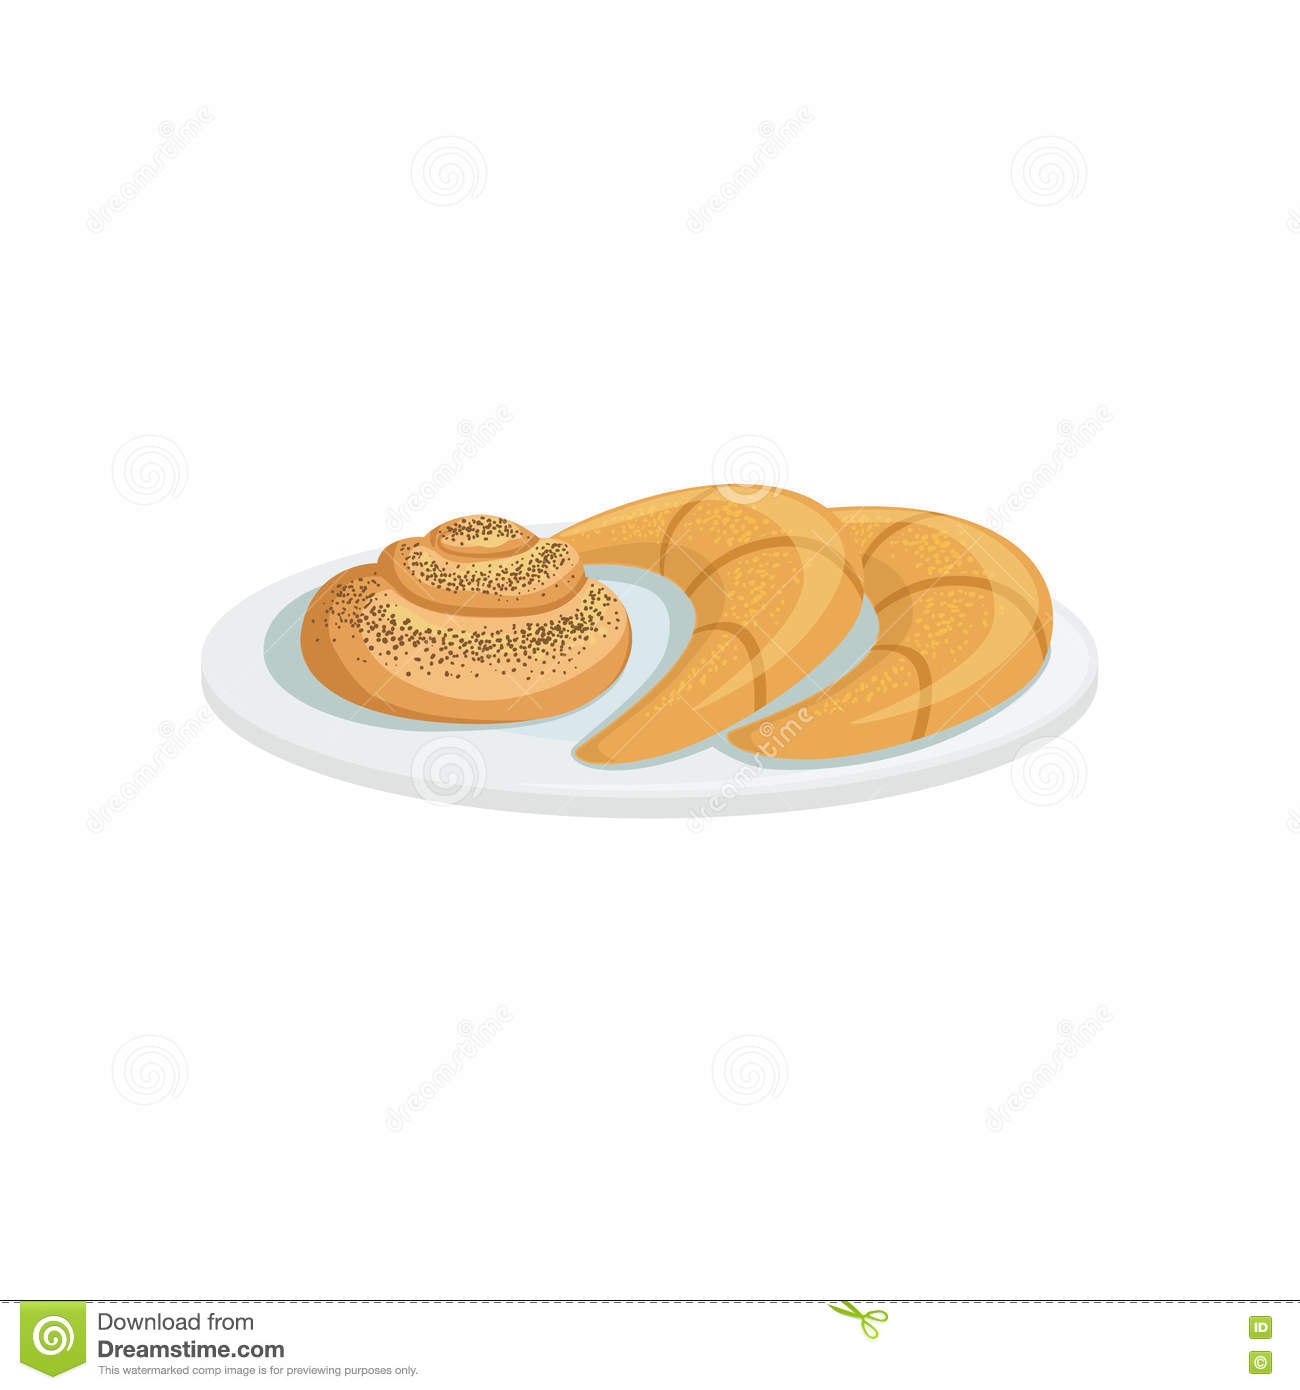 french pastry european cuisine food menu item detailed illustration